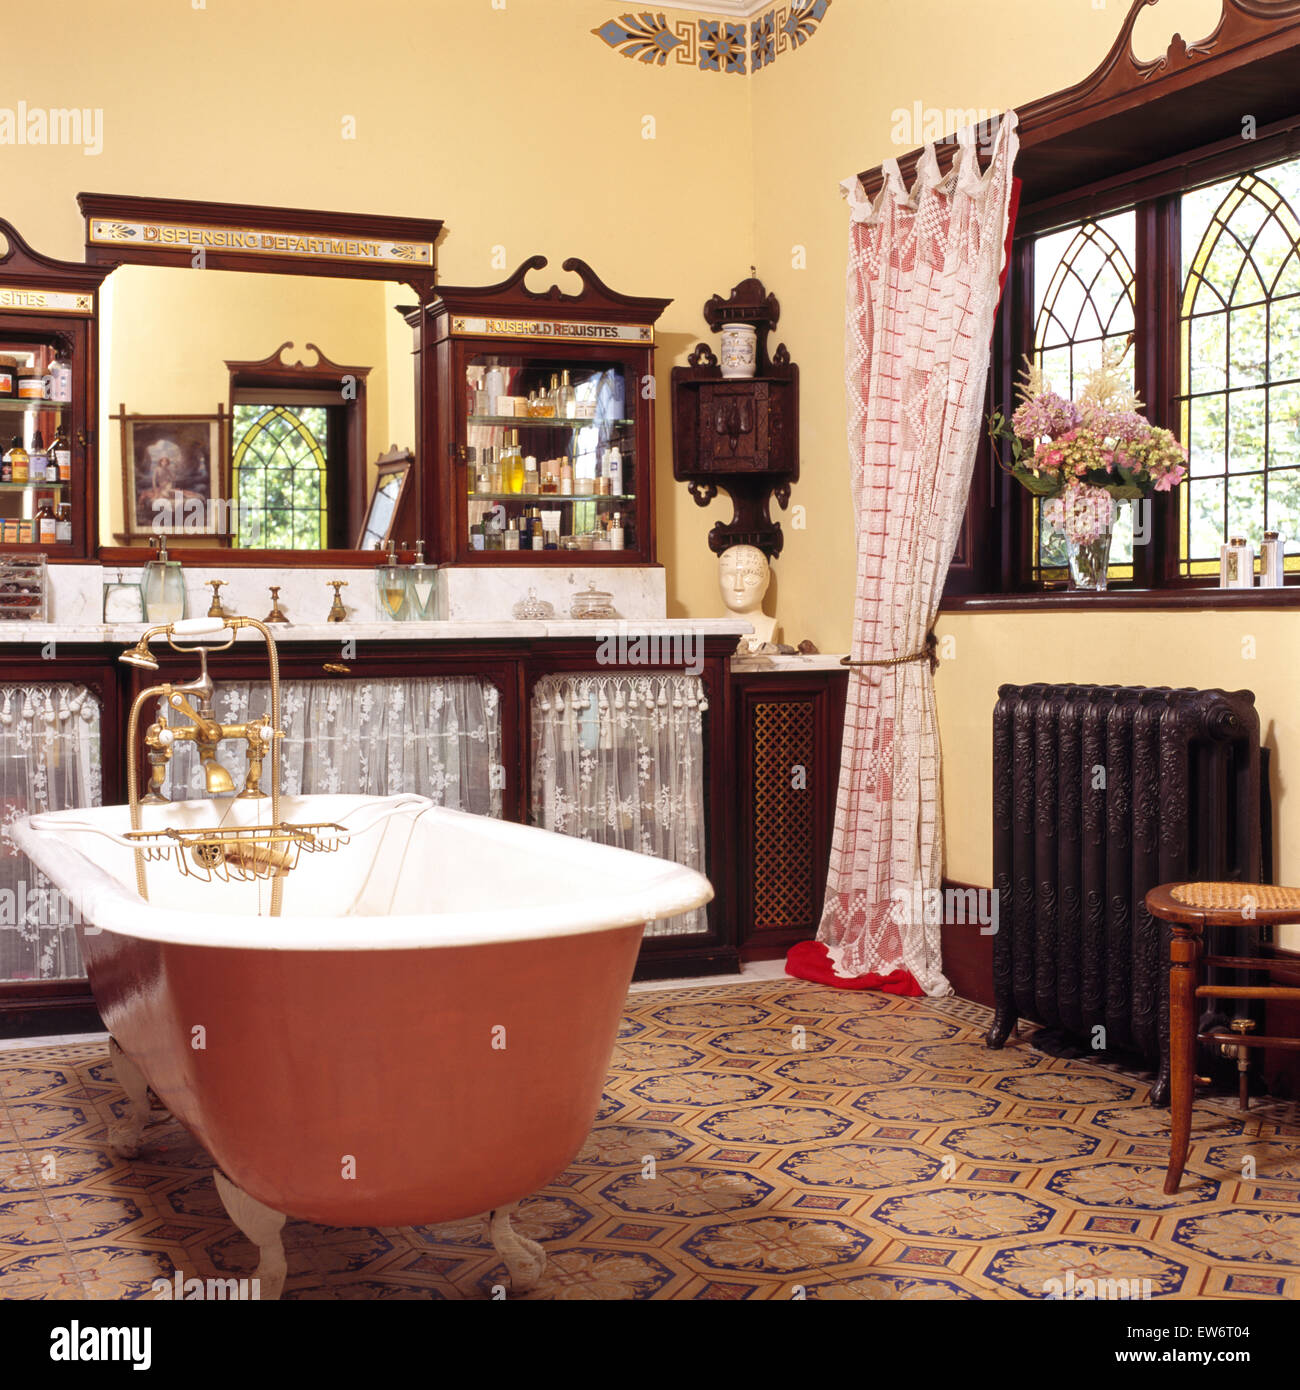 Painted Roll Top Bath In Nineties Edwardian Style Bathroom With